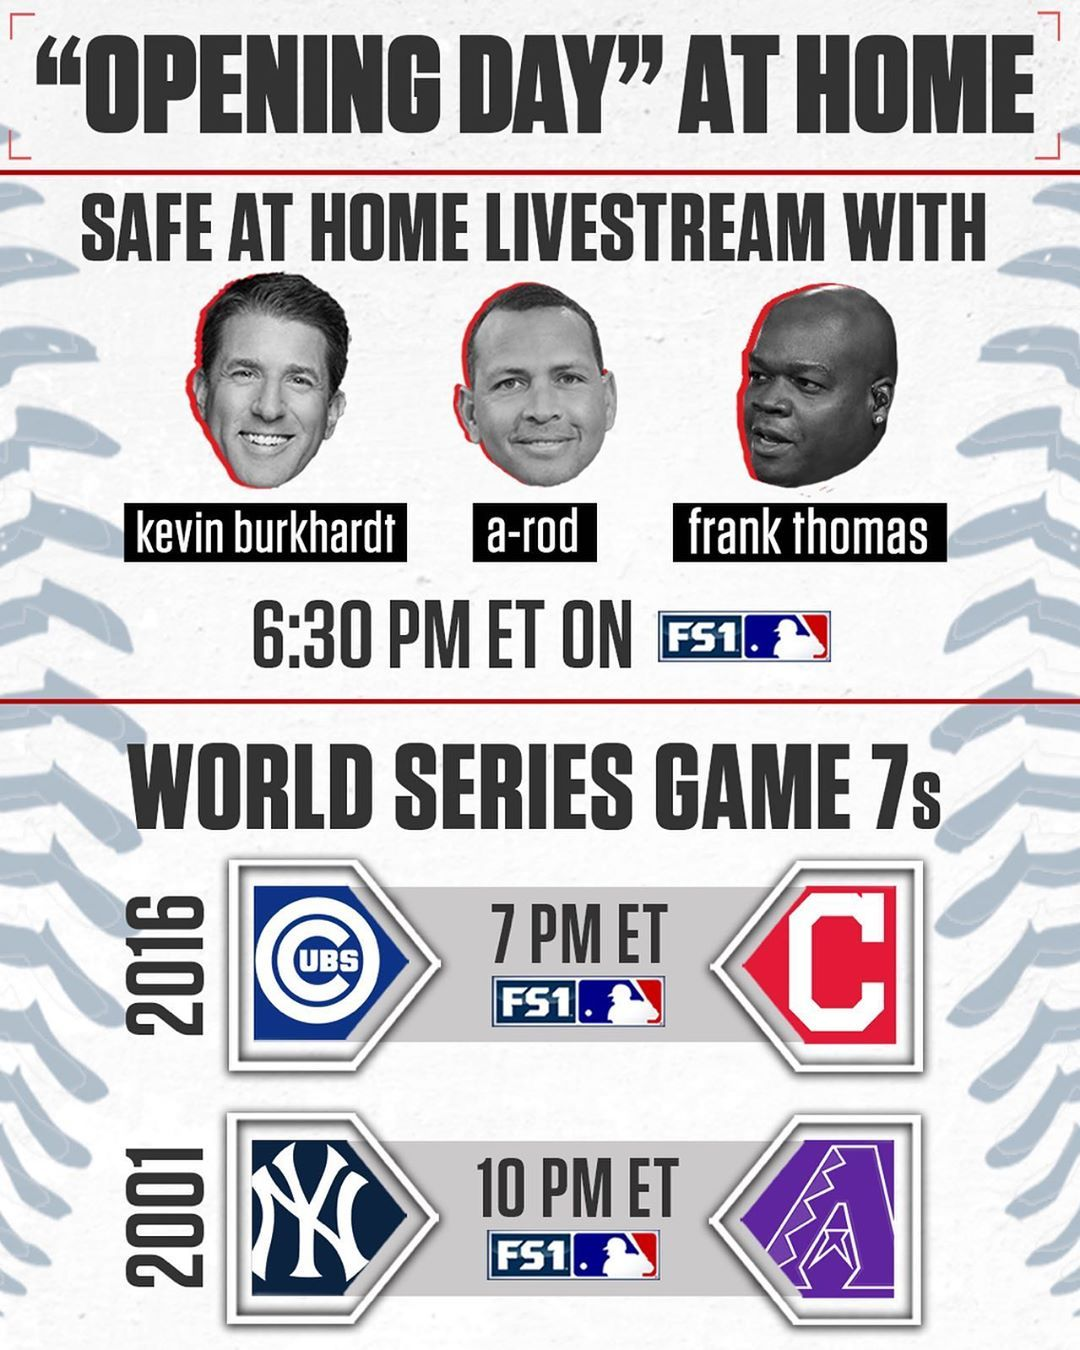 Mlb On Fox On Instagram There Is Still Coming Your Way It All Starts Tomorrow At 6 30 Pm Et On Fs1 In 2020 Mlb Instagram Frank Thomas